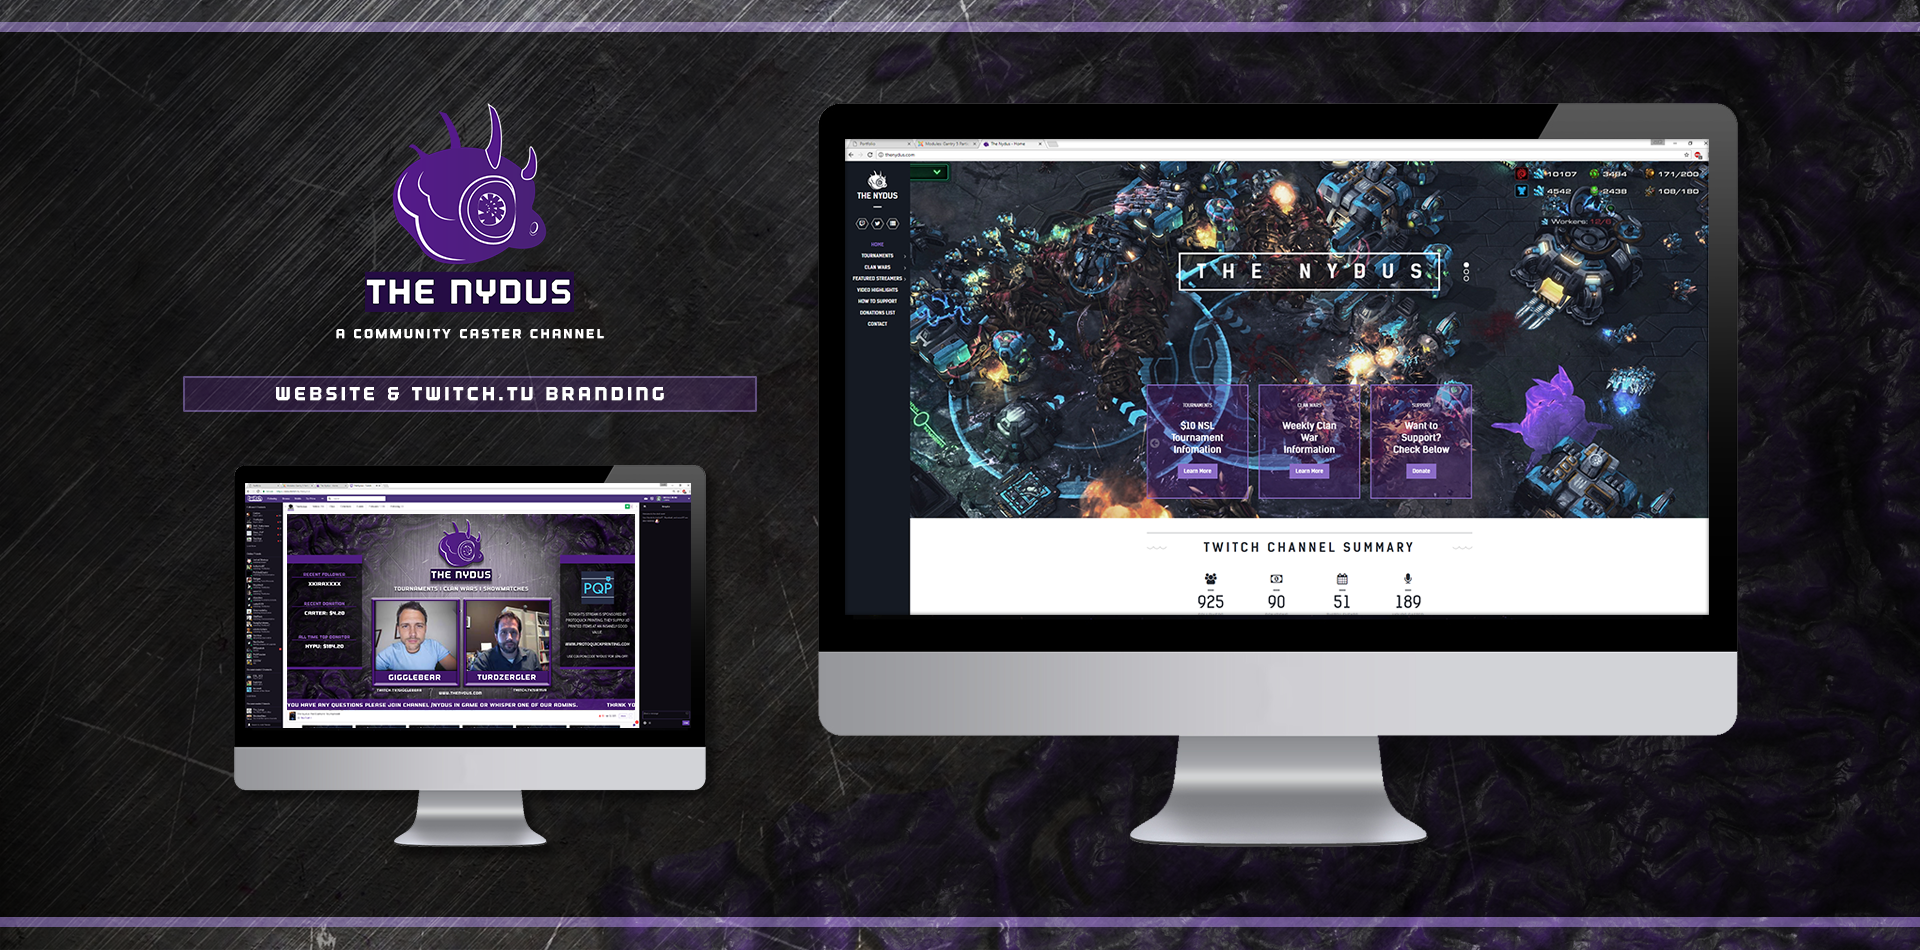 The Nydus Website & Branding